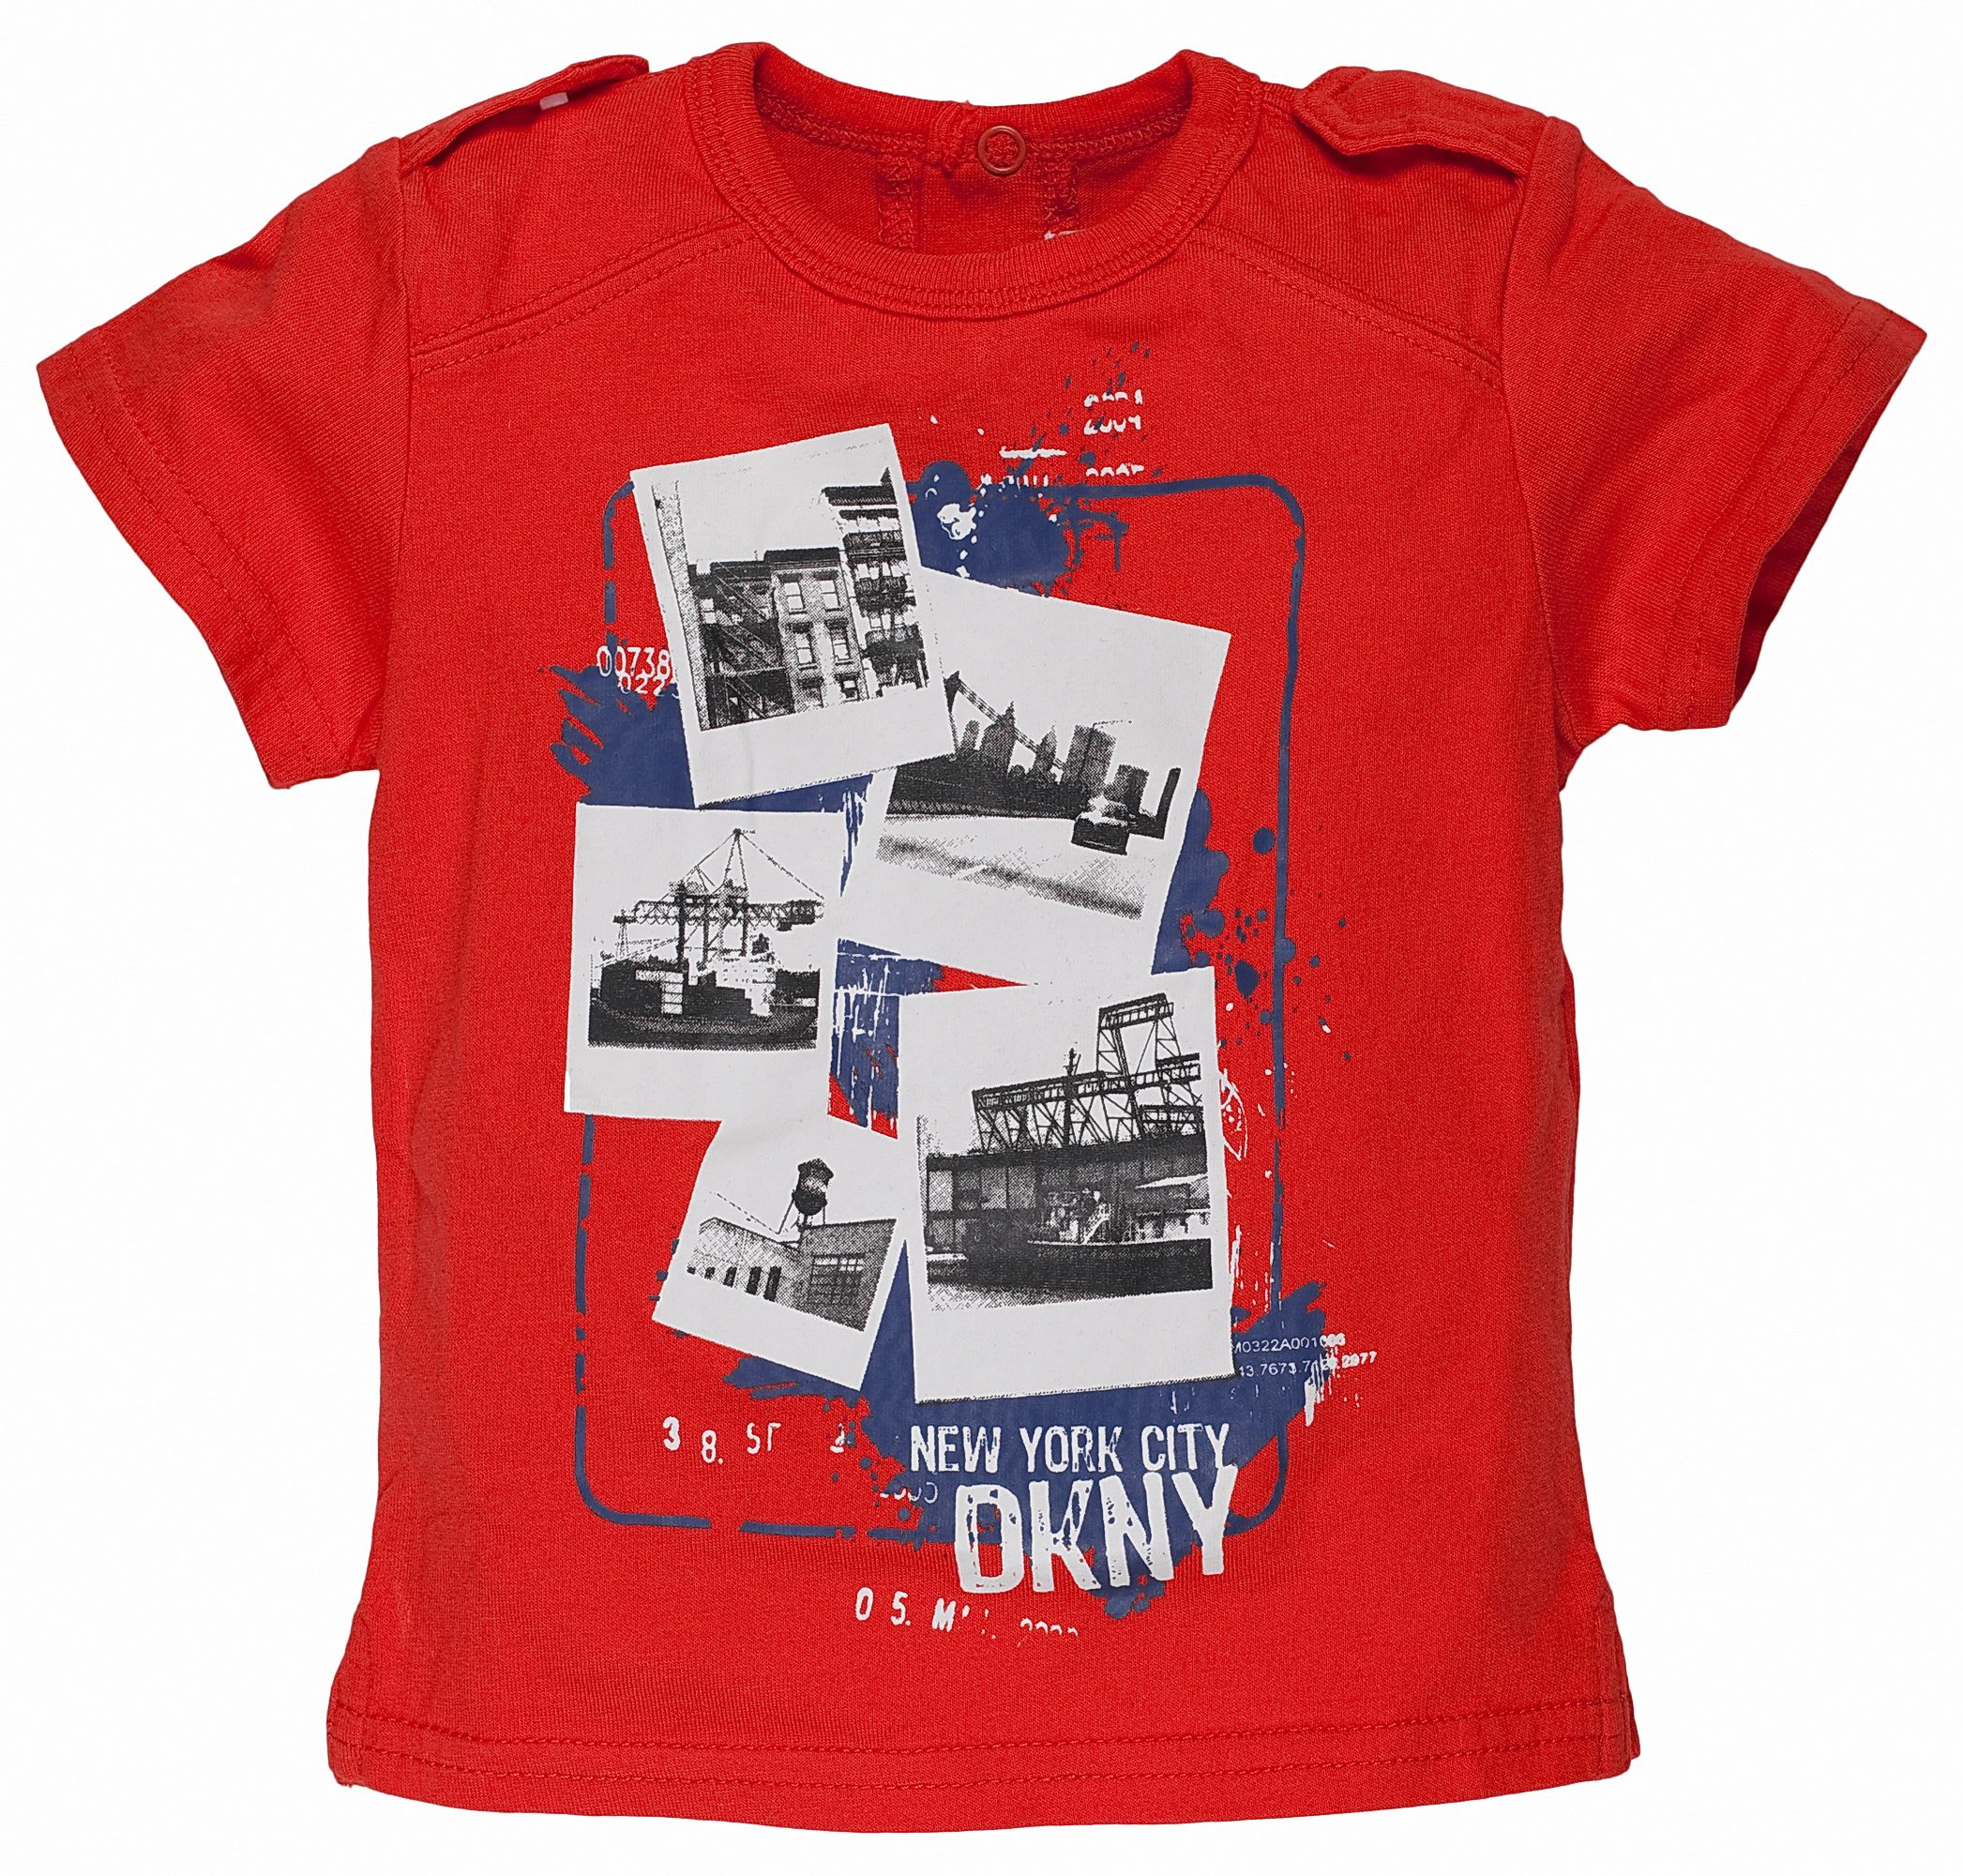 DKNY Childrens DKNY Short-sleeved T-shirt, product image